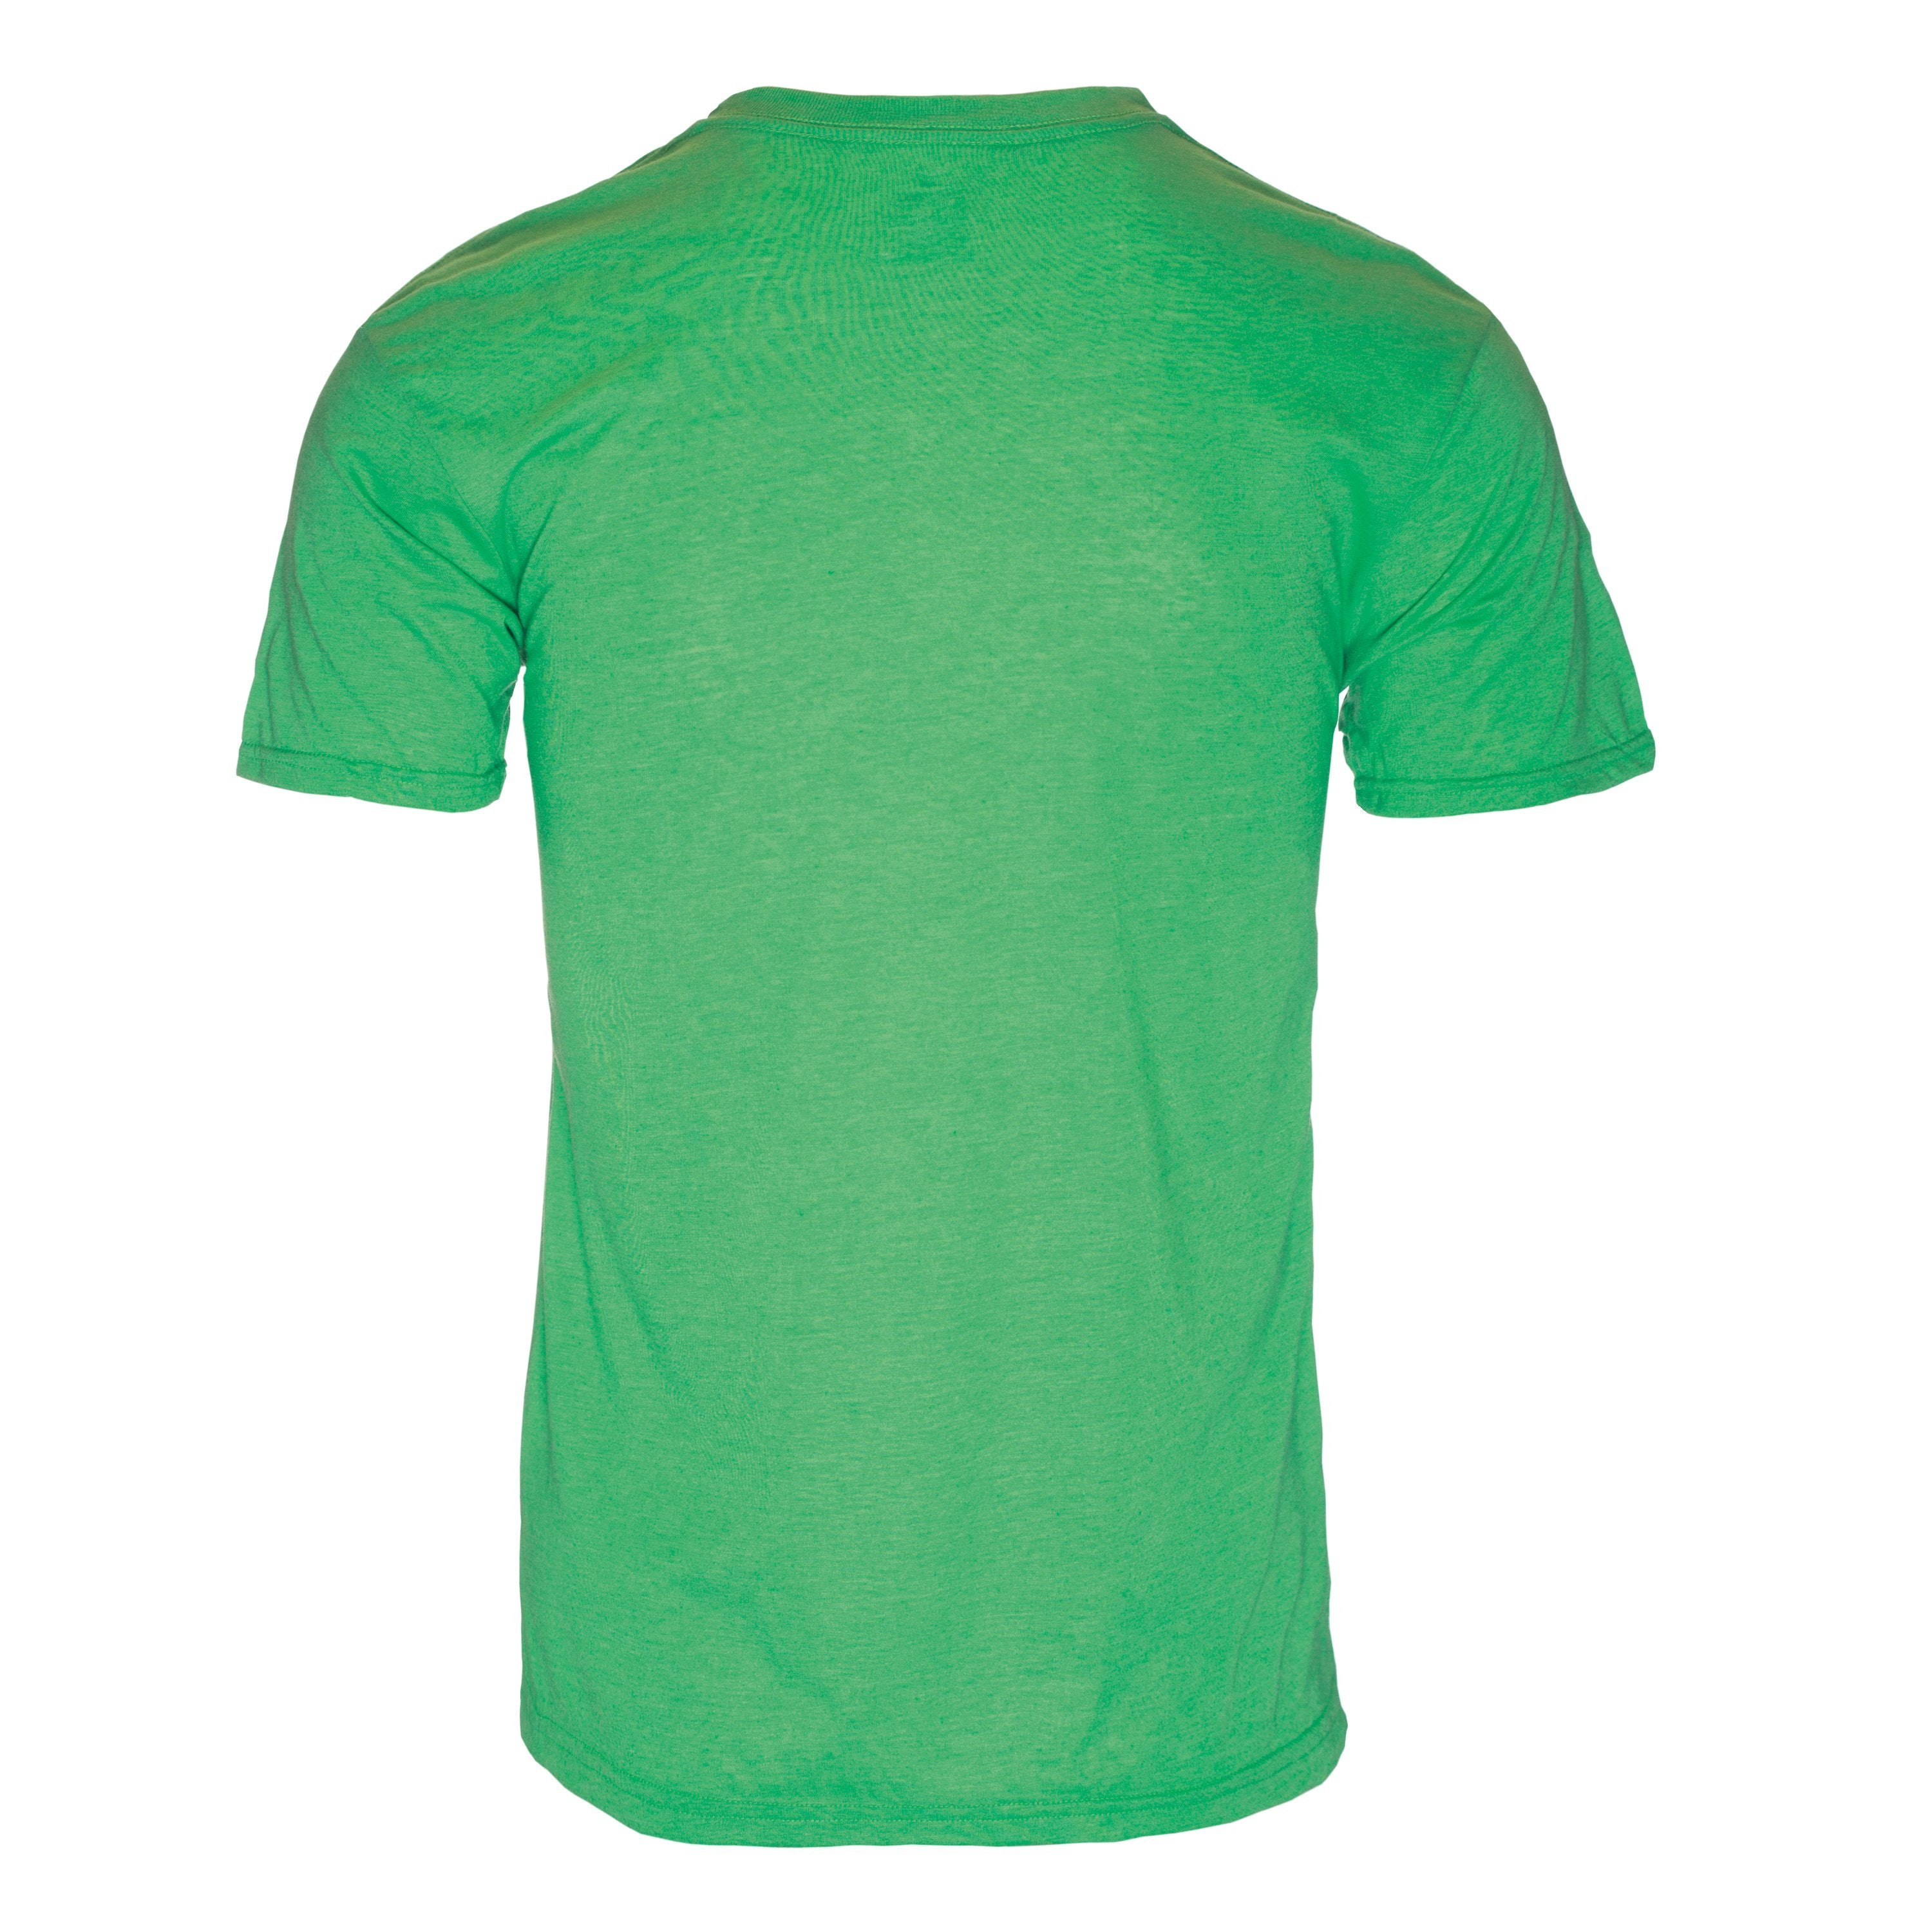 RM101GN Eco REPREVE® Recycled Triblend Crew T-Shirt - Green